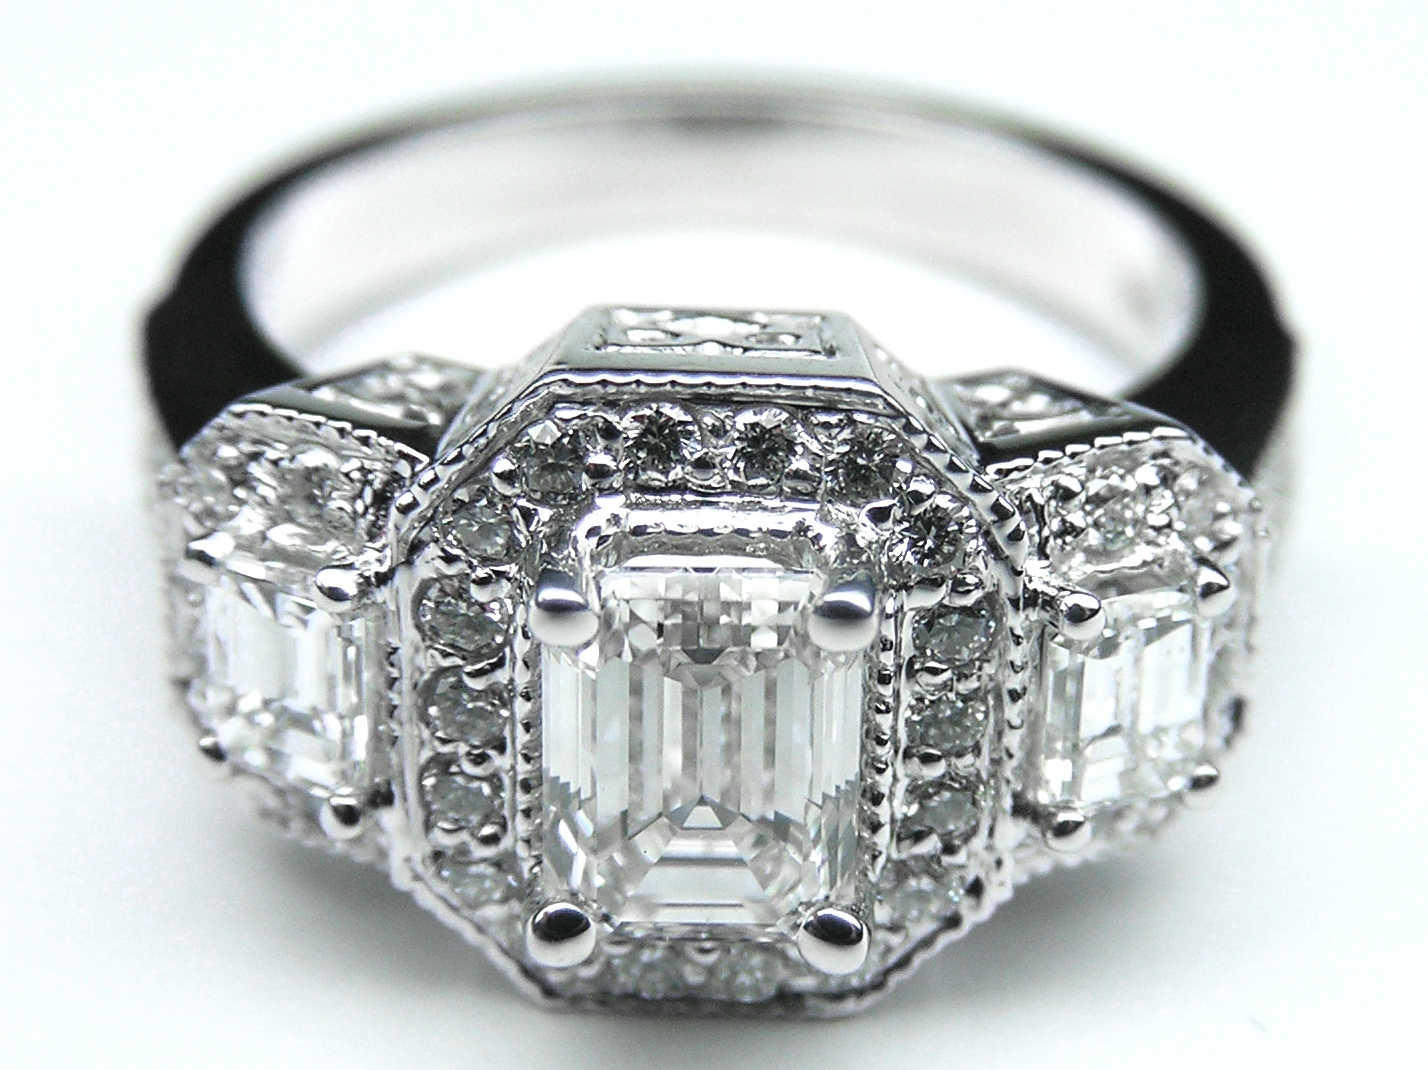 Vintage Style Three Stone Emerald Cut Diamond Engagement Ring in 14K White Gold